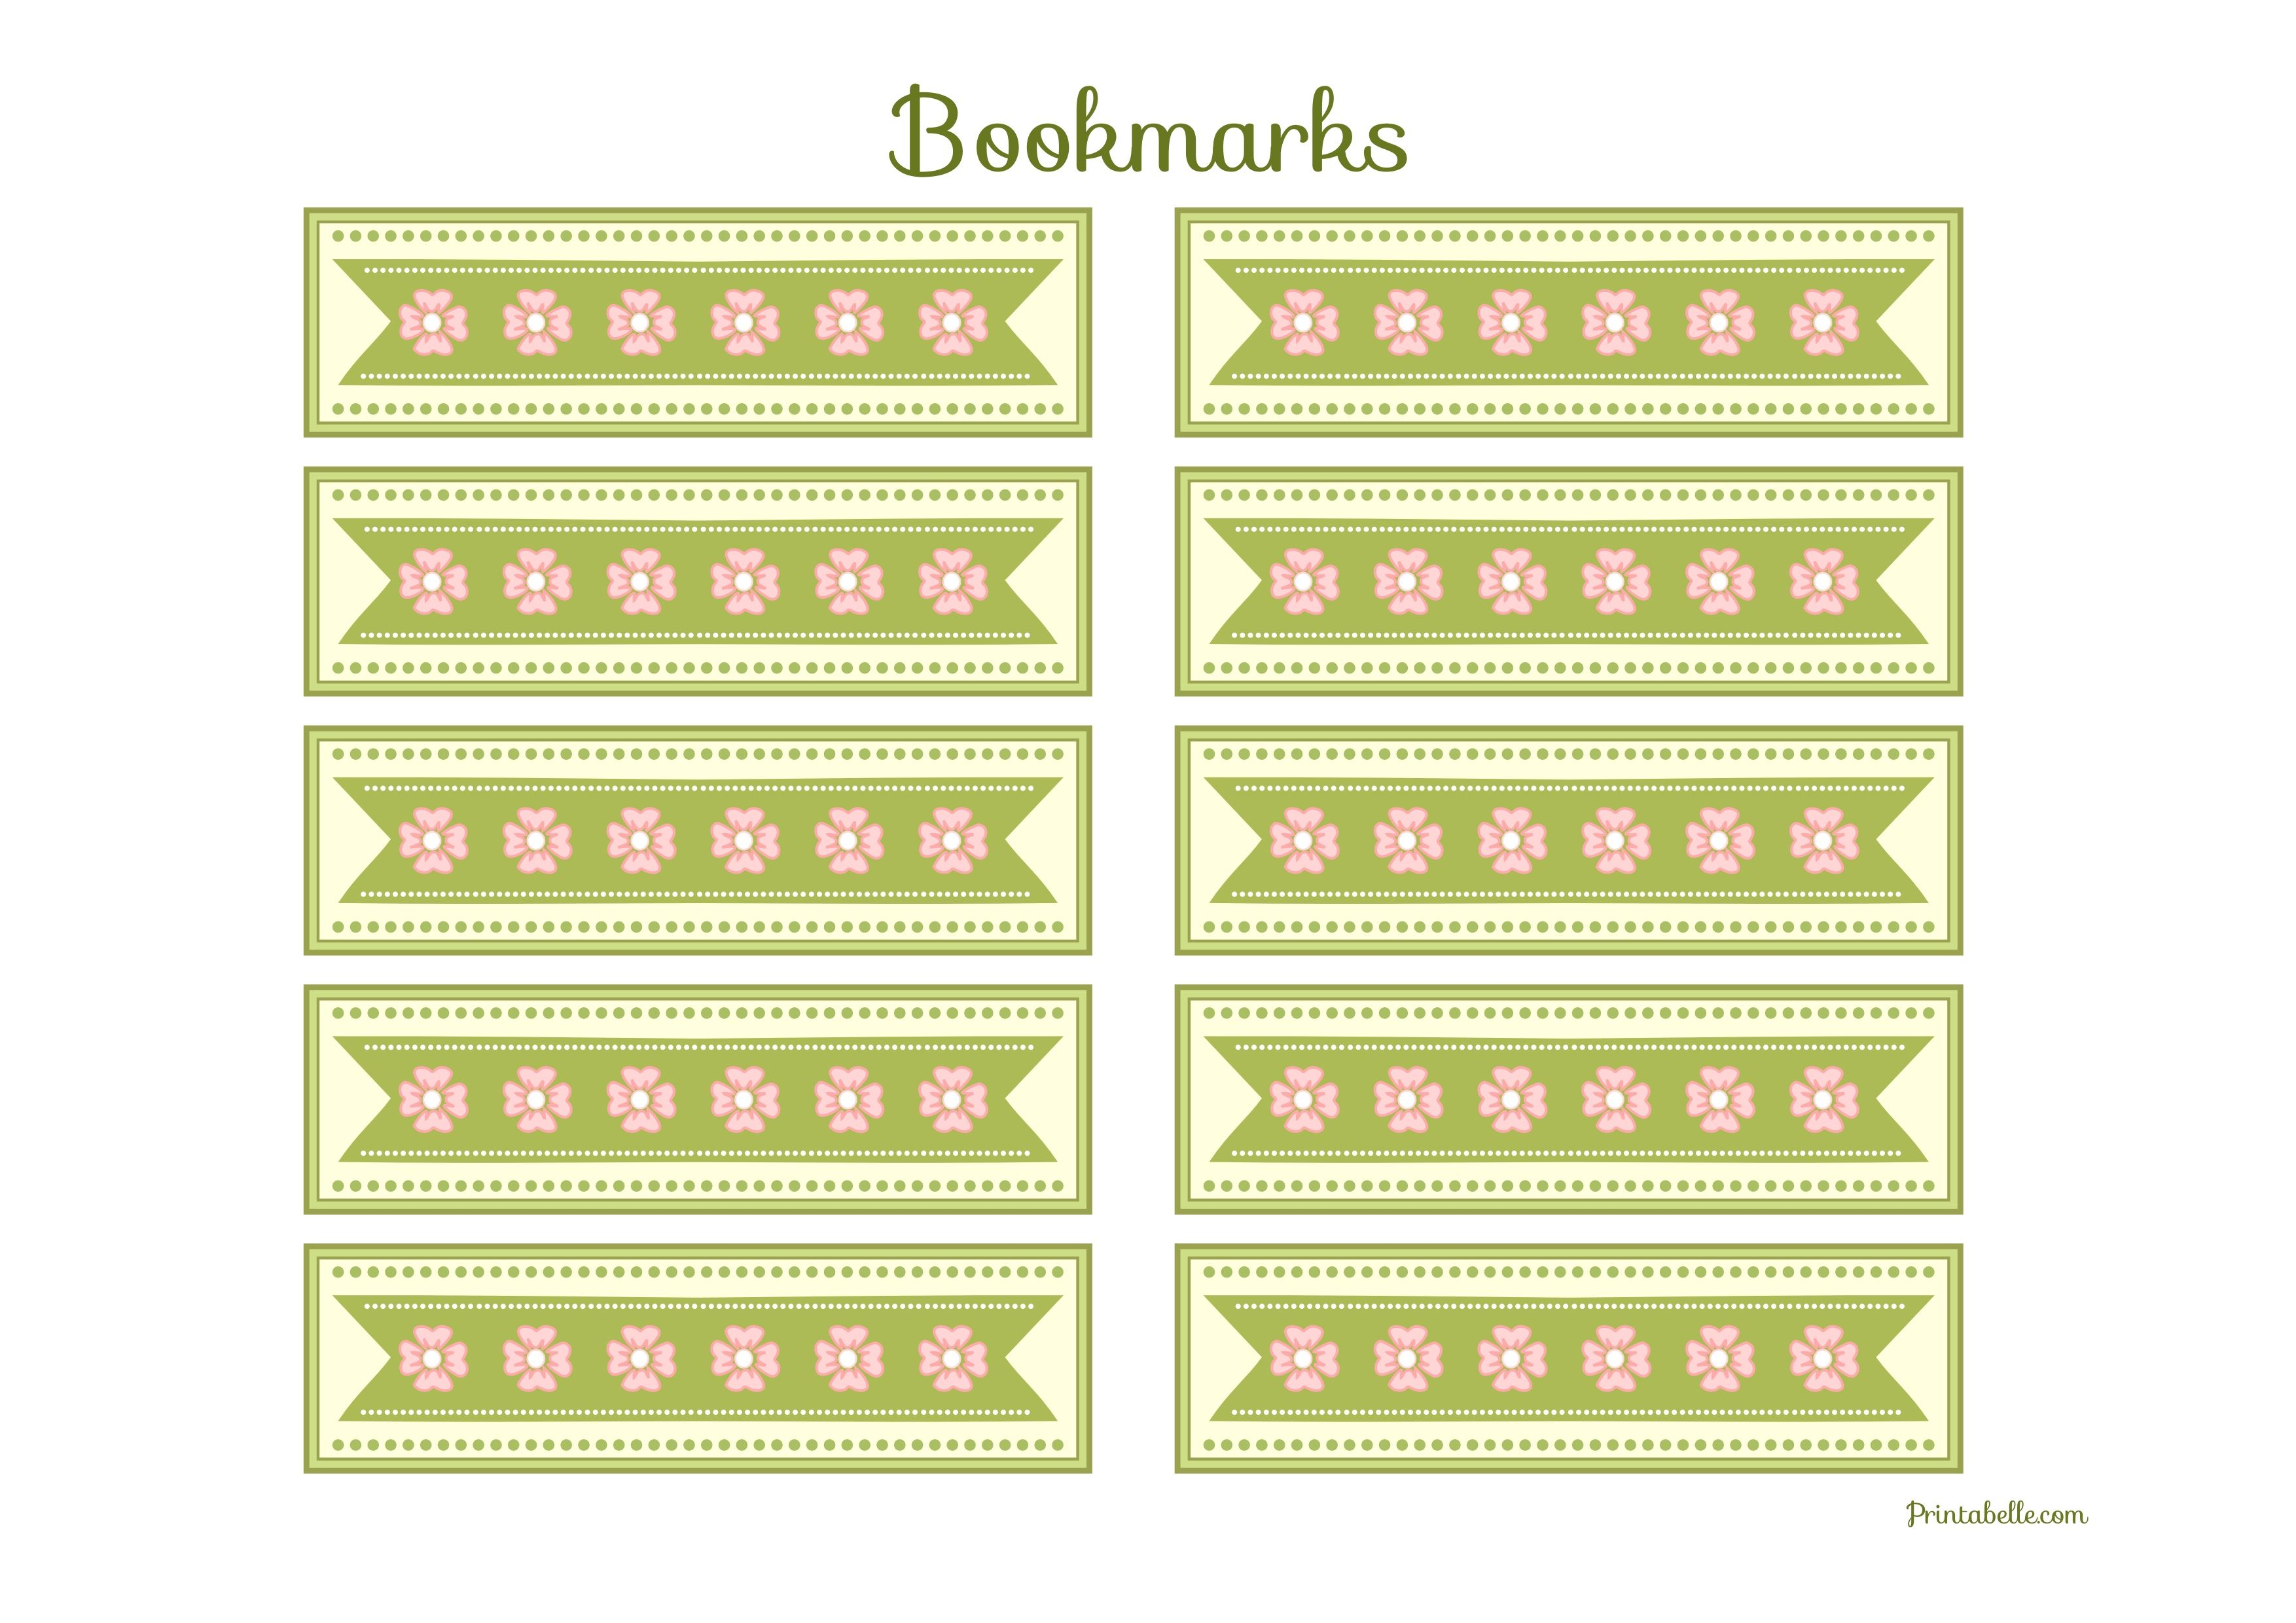 Free Vintage Baby Shower Printables From Printabelle   Vintage Baby - Free Printable Baby Bookmarks